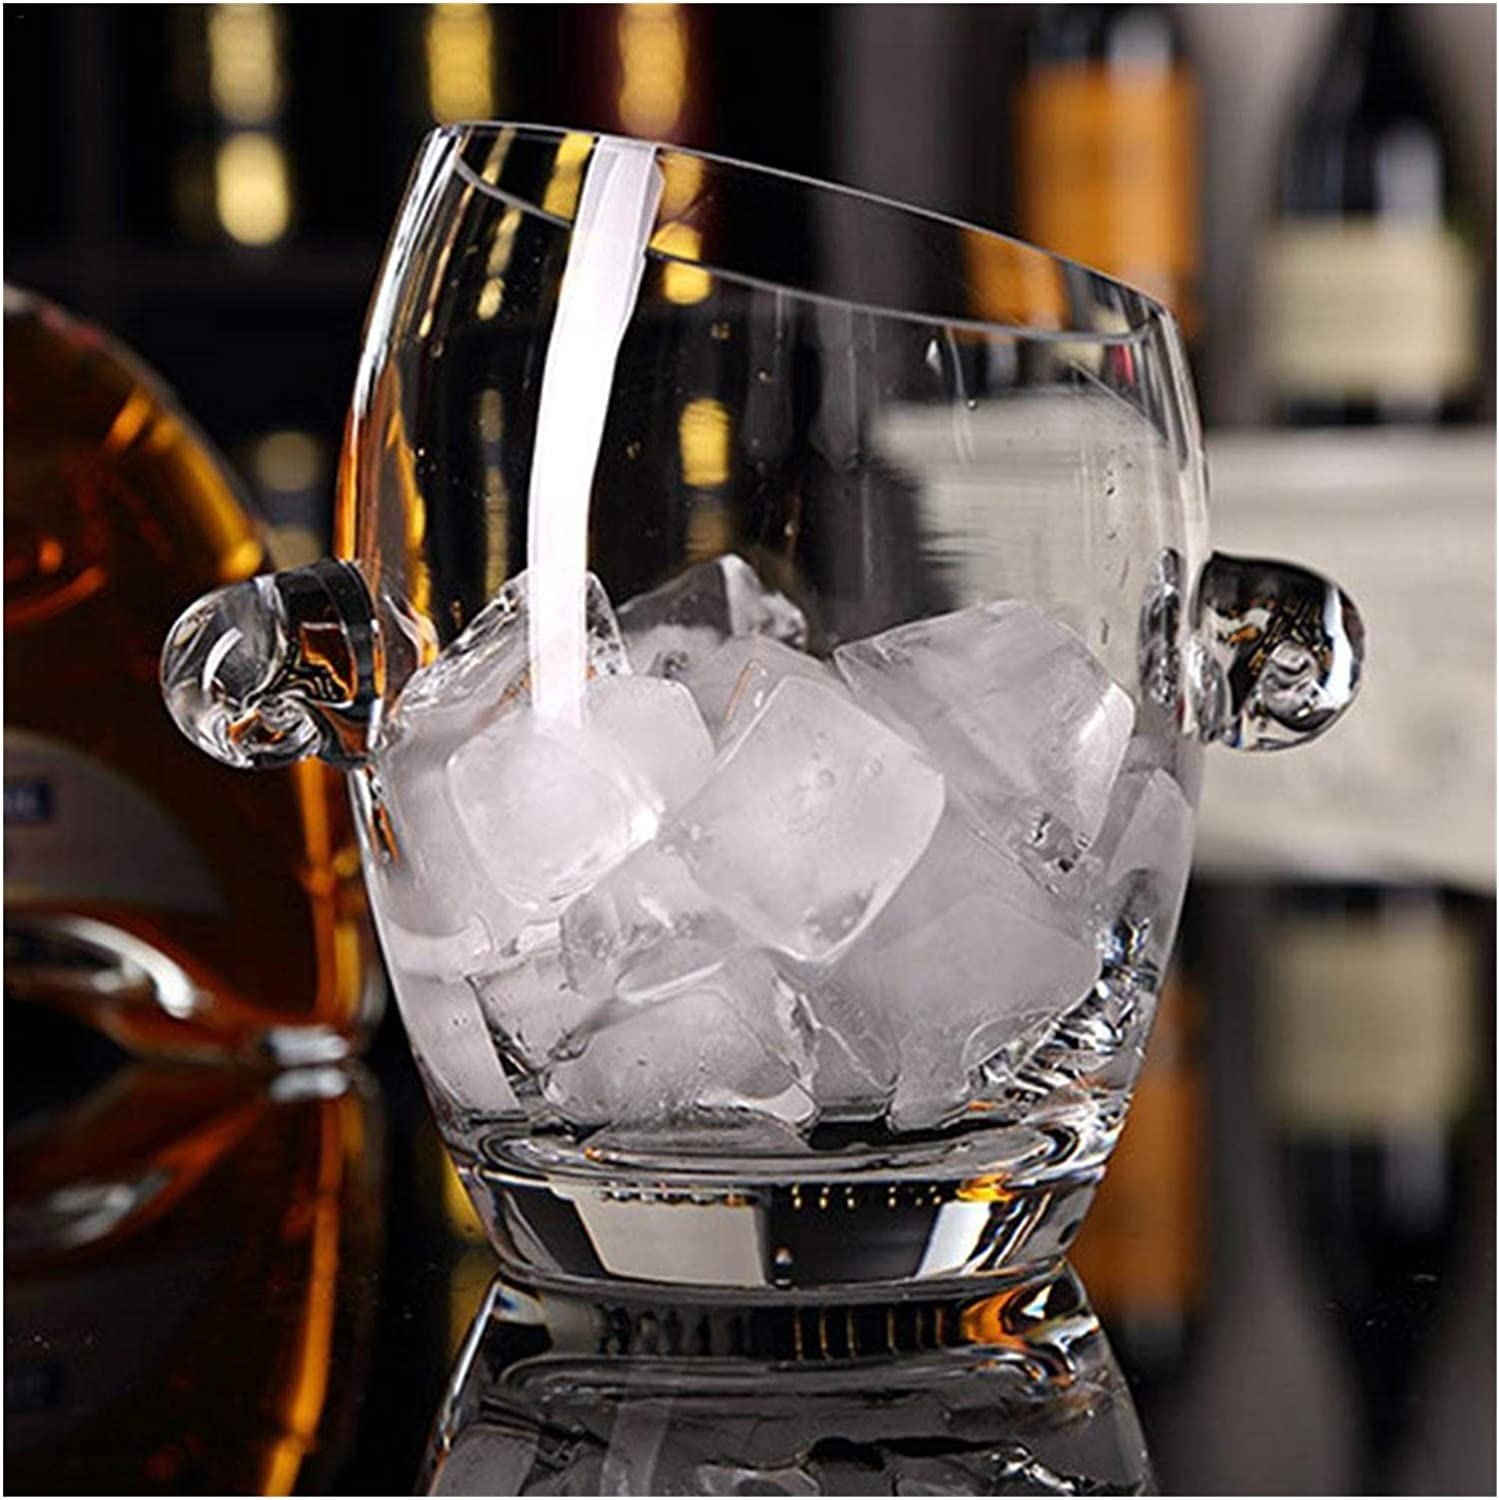 ice bucket for cocktail Chicago Mall bar Ranking TOP4 Whiskey Sipping Whis Ice Cube Stones